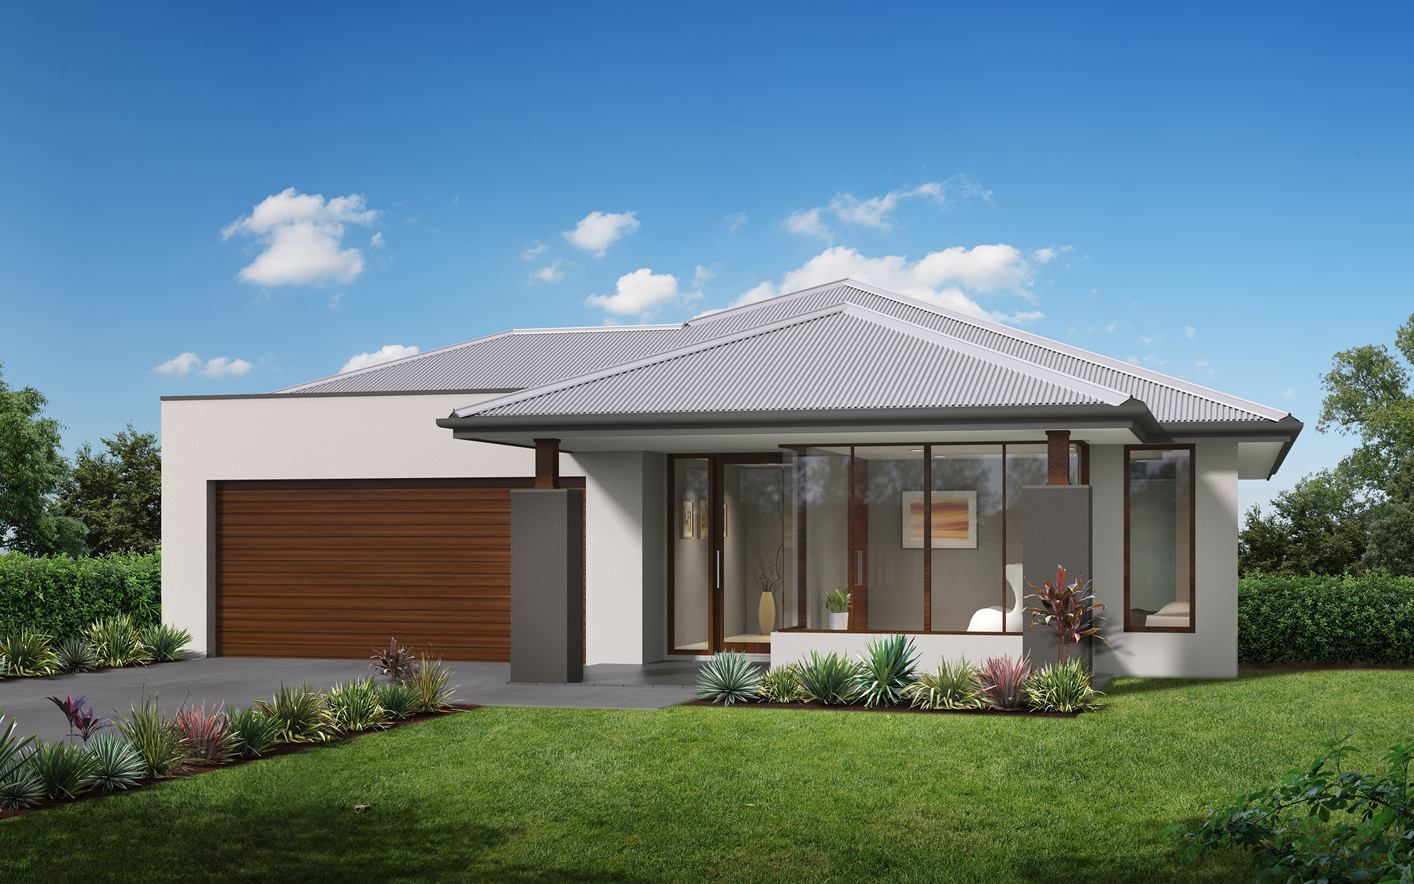 Metford Home Design with Aspire Facade